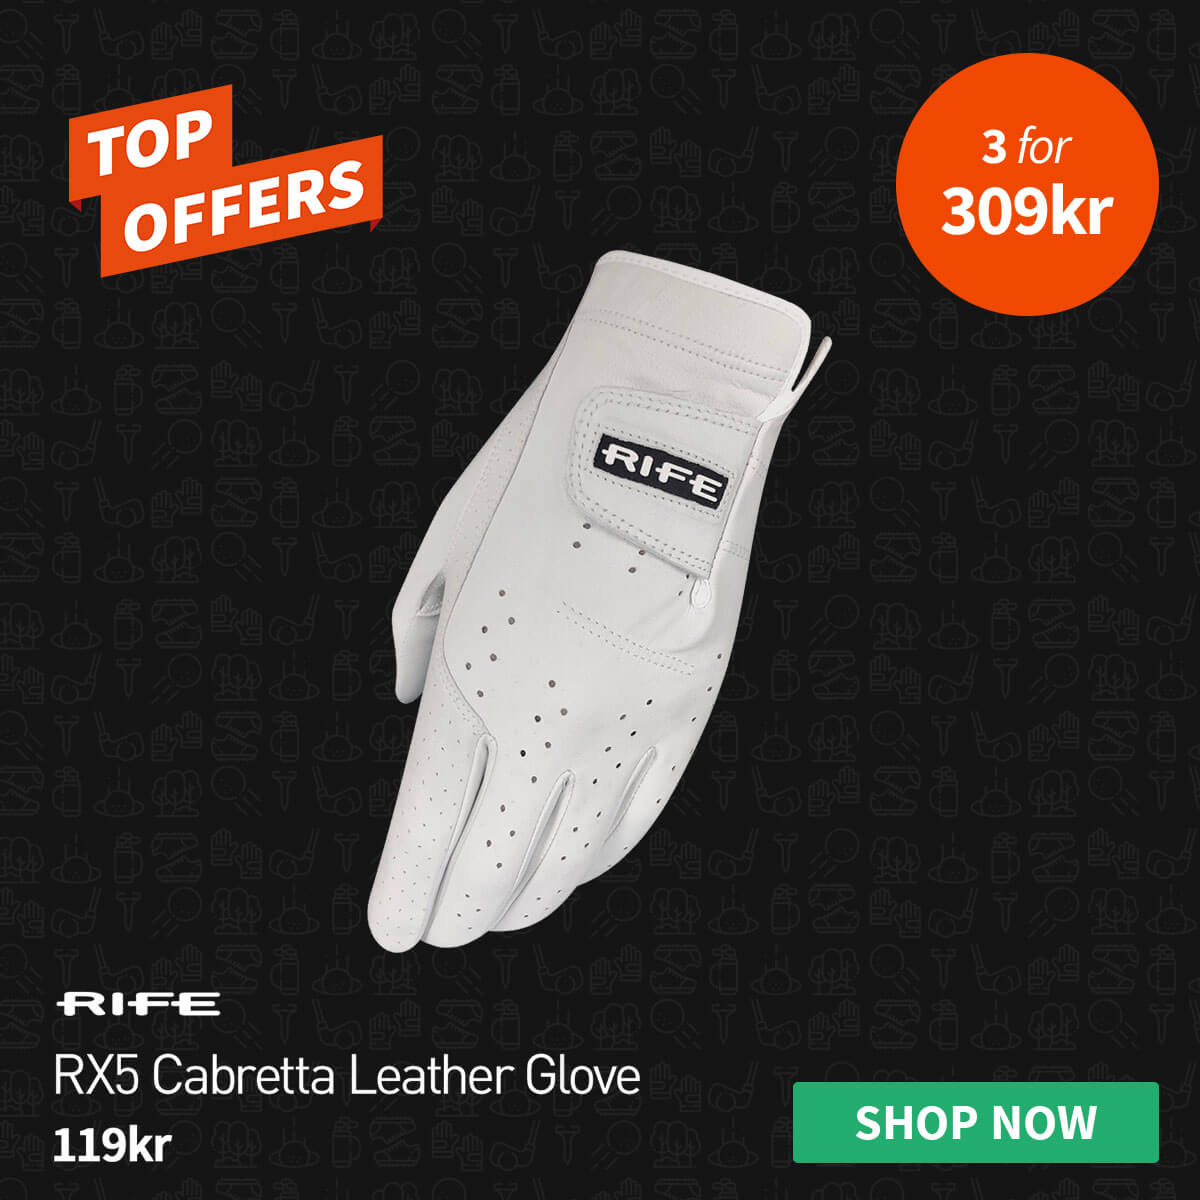 TOP OFFERS - RIFE GLOVES